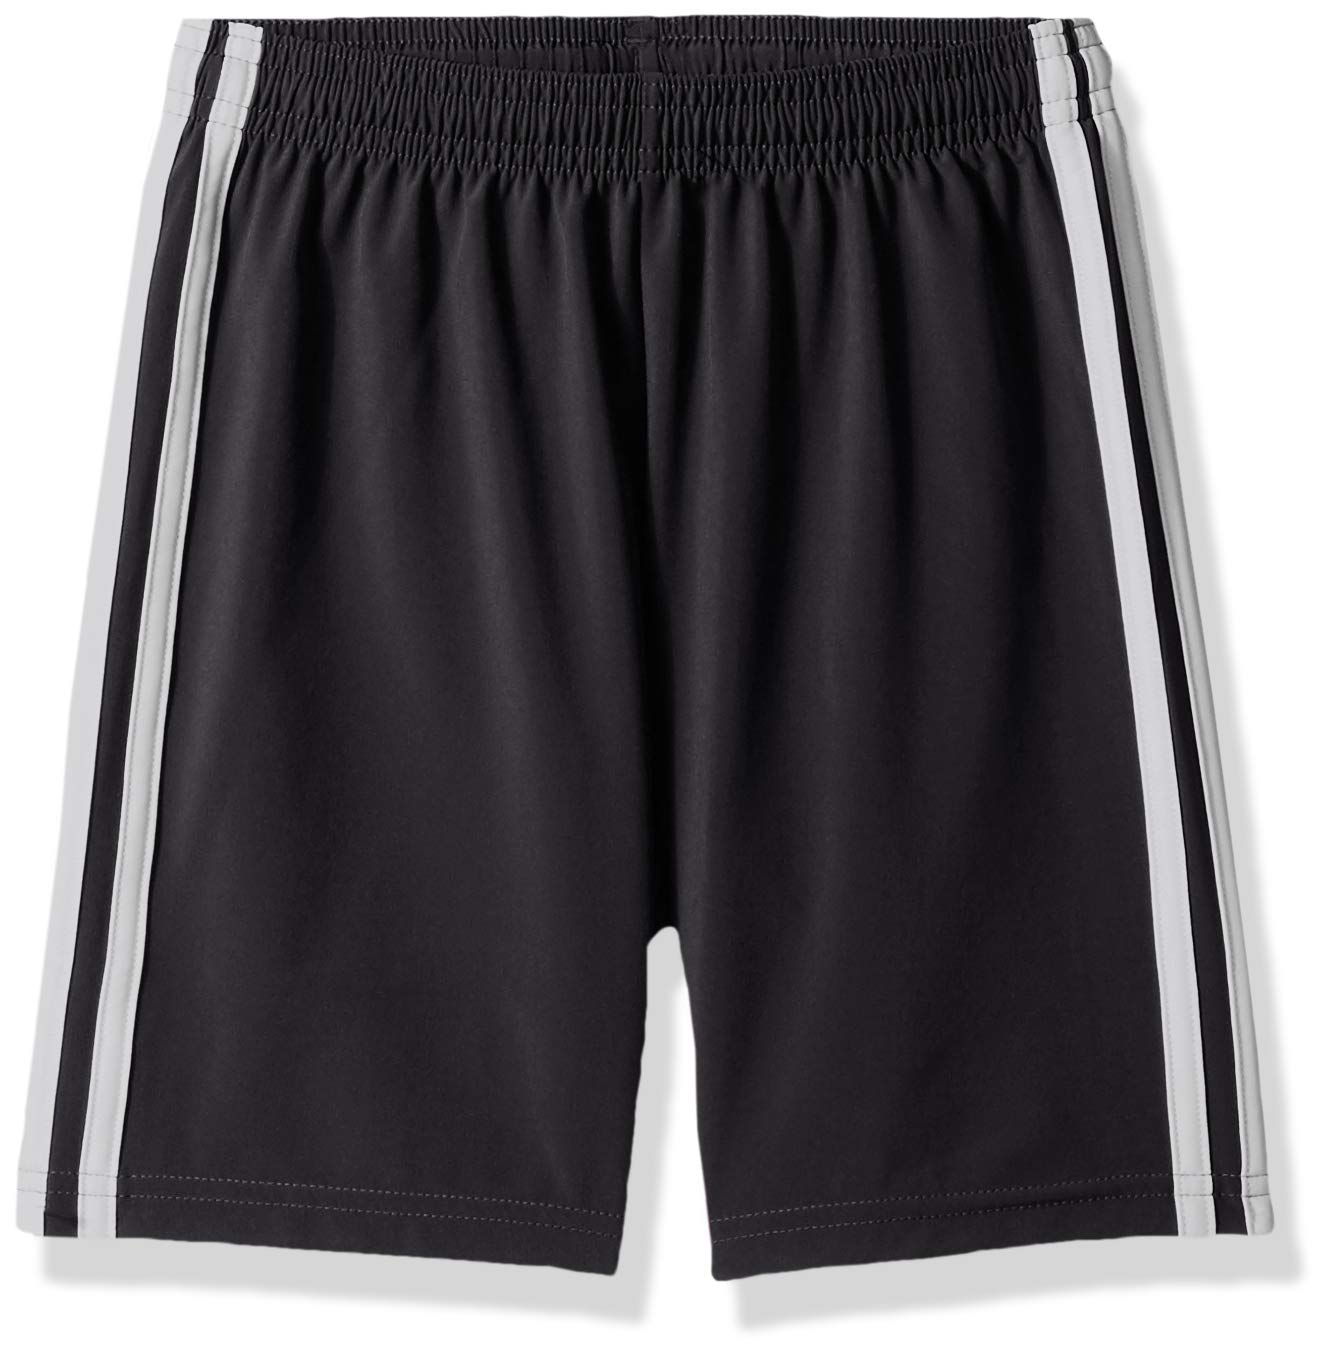 adidas Youth Condivo18 Youth Soccer Shorts, Black/White, Large by adidas